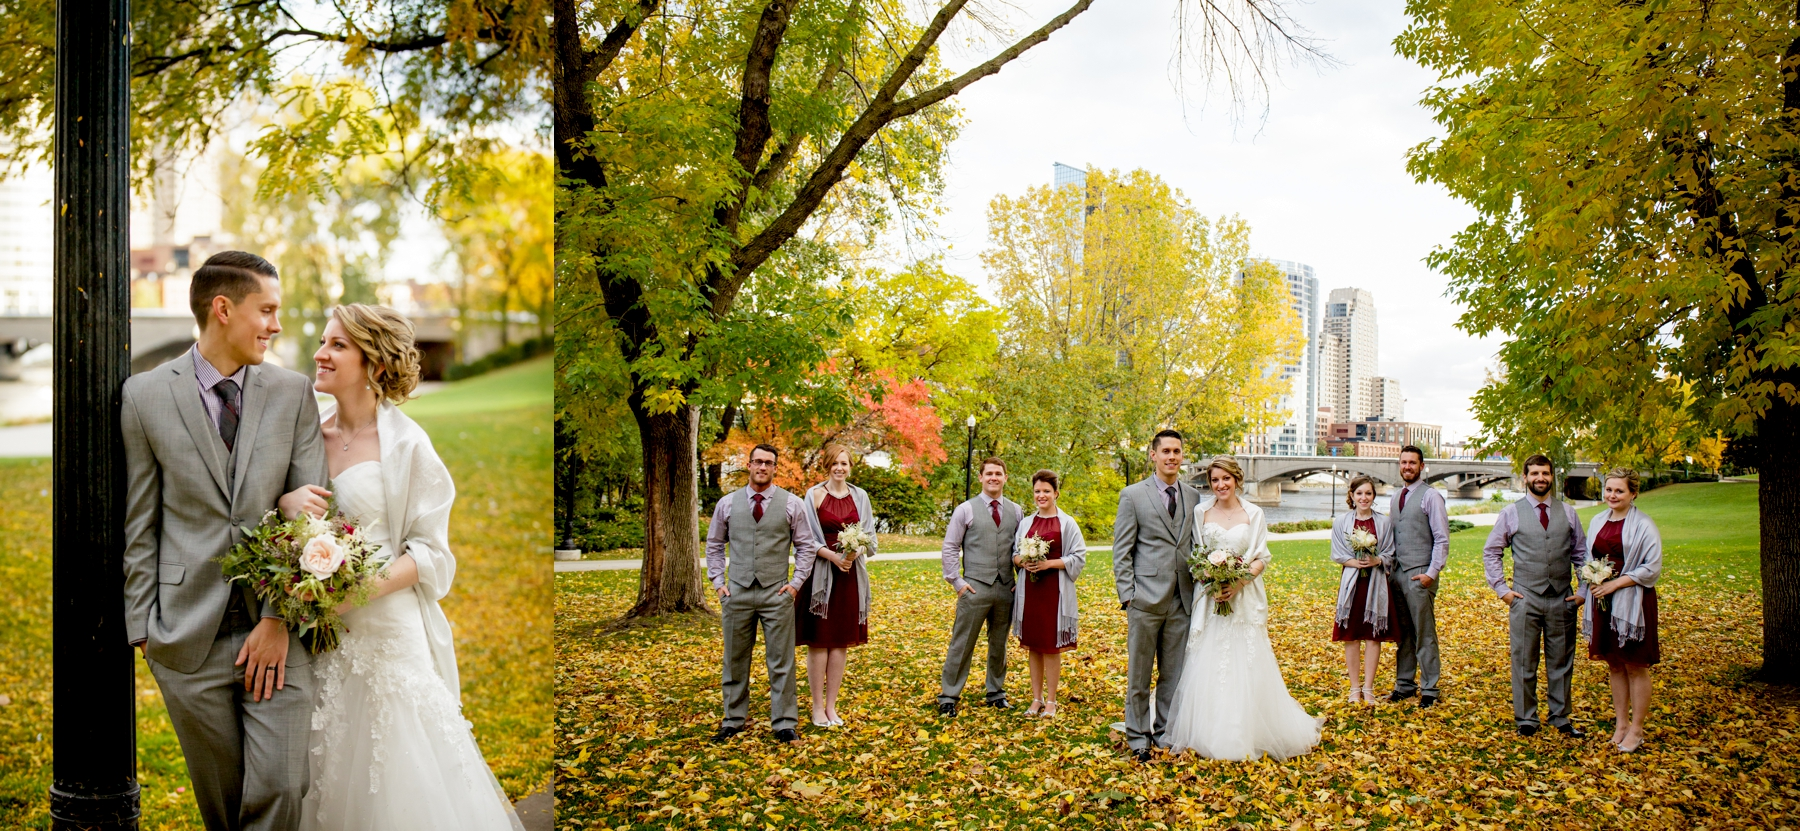 Brandon_Shafer_Photography_Kristen_Corey_Downtown_Grand_Rapids_Fall_Wedding0040.JPG